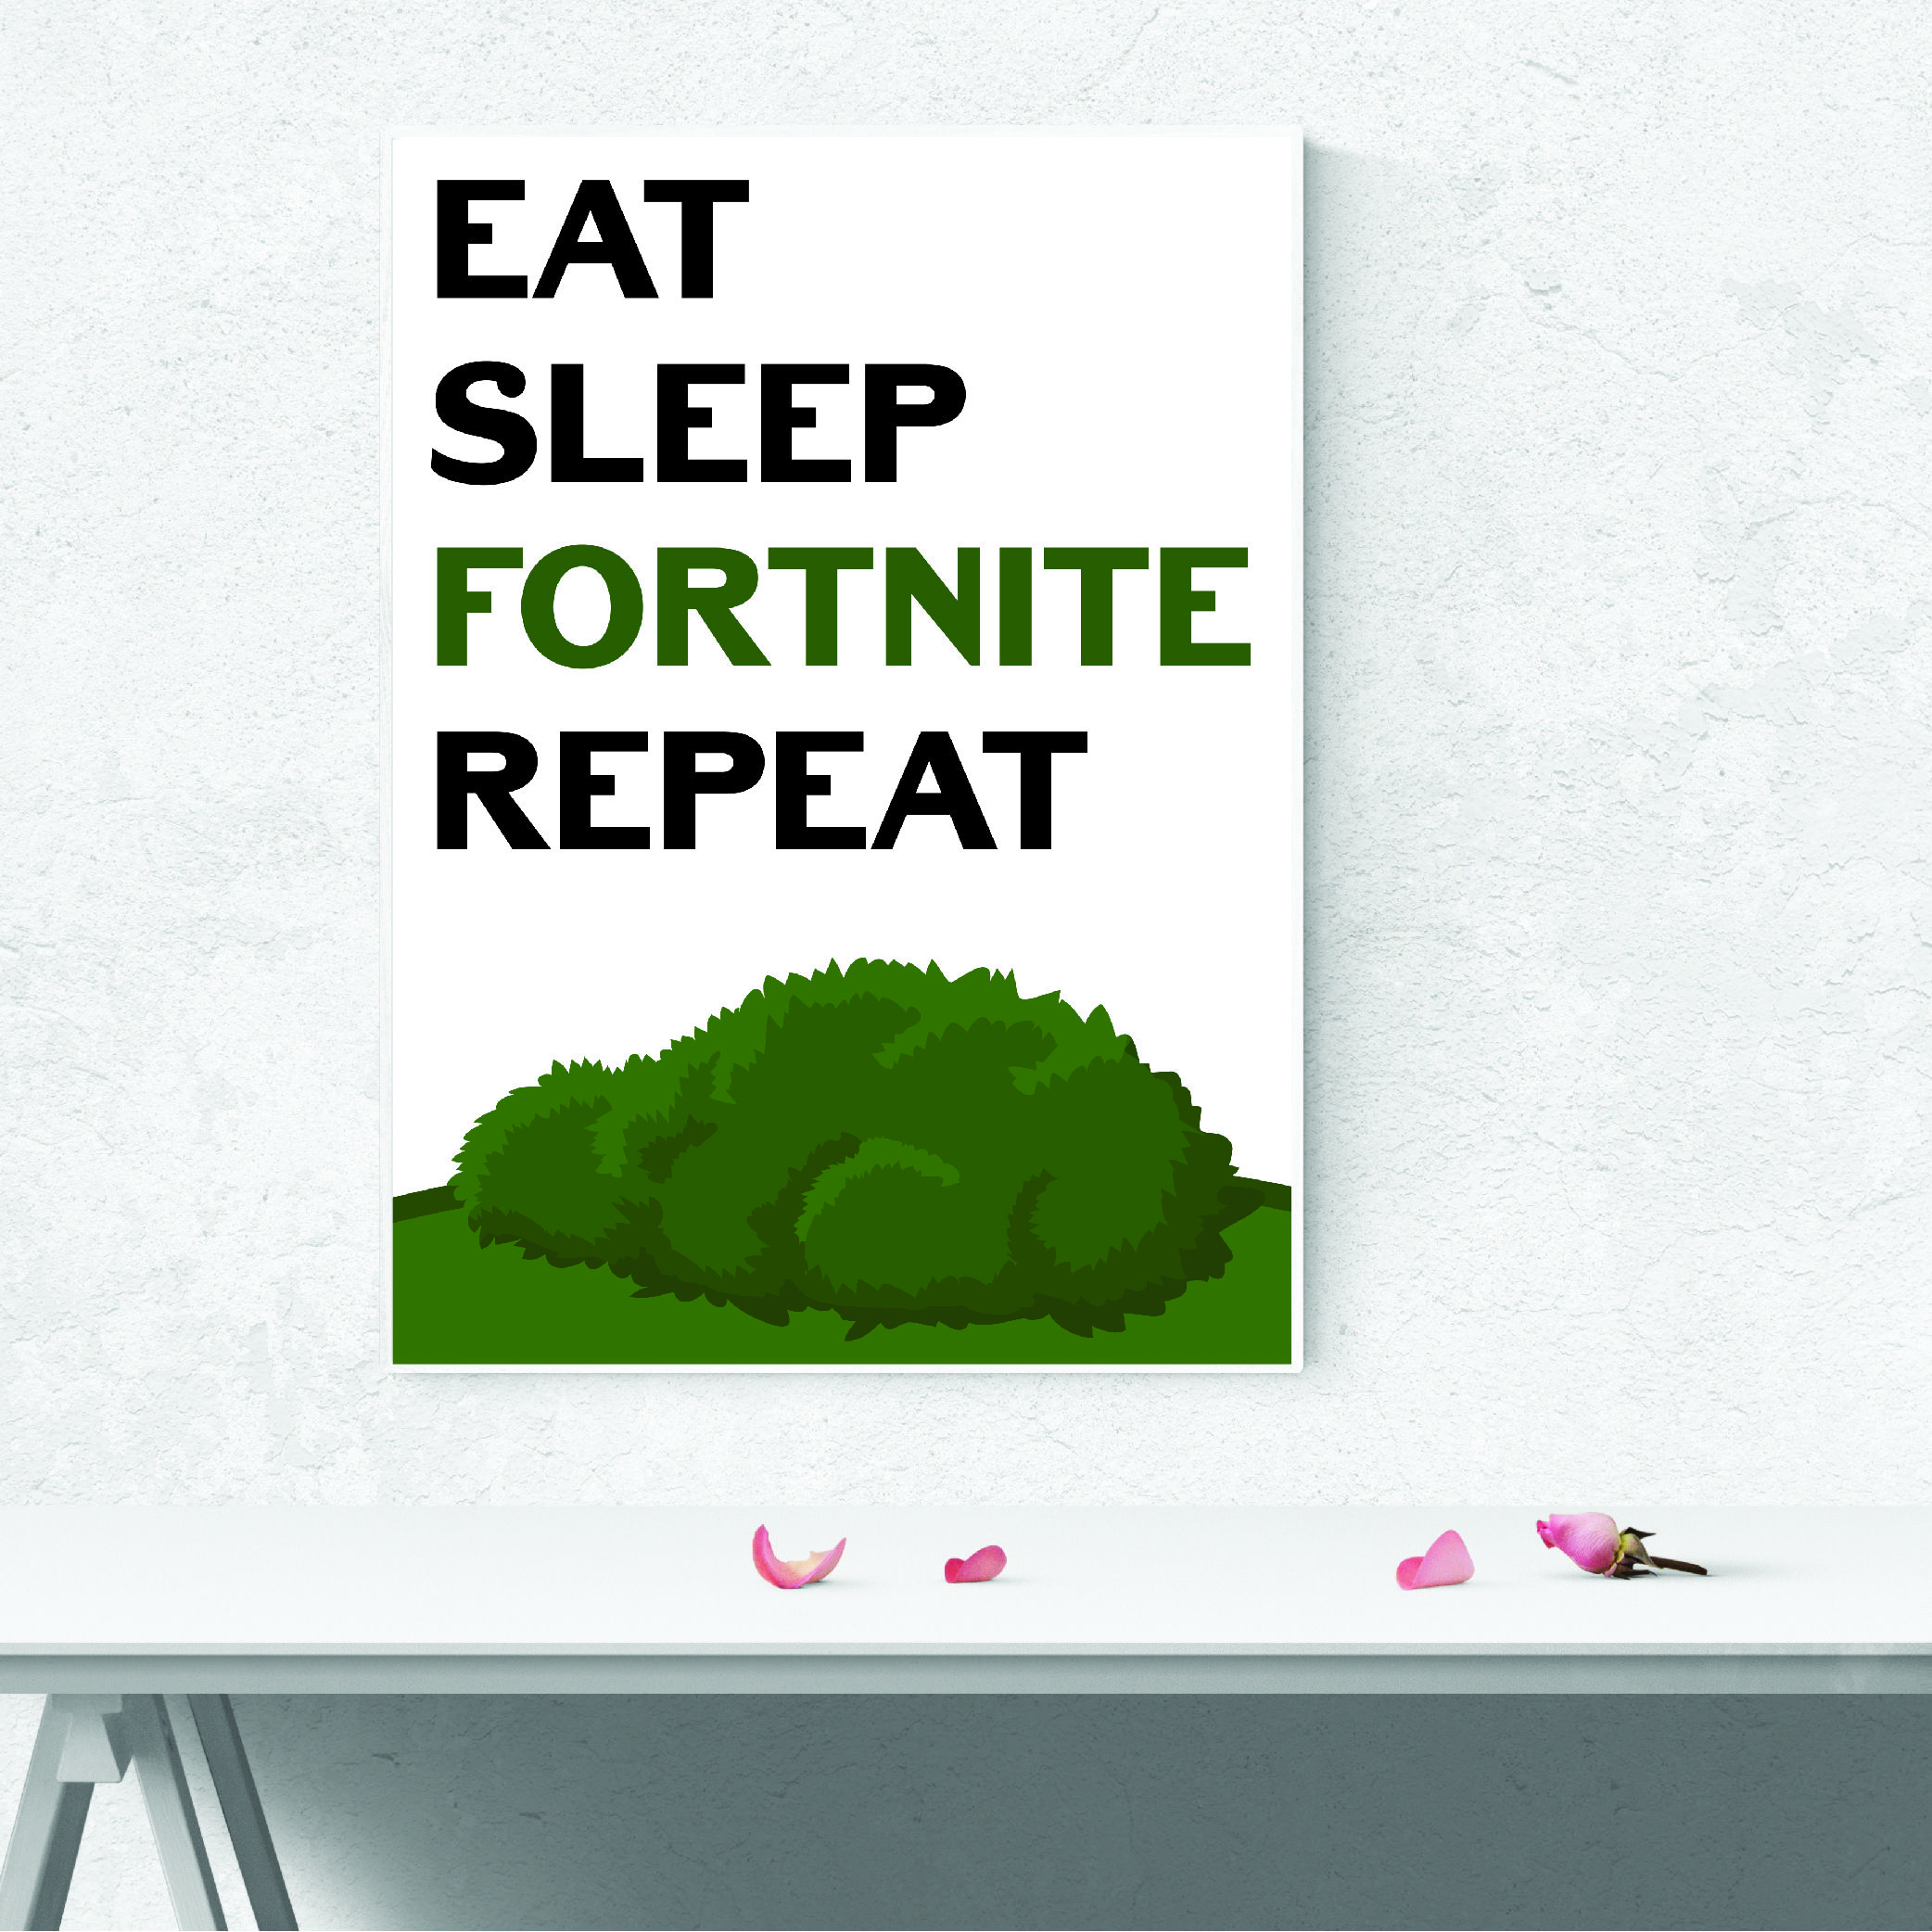 5 Piece Garrison Fortnight Battle Royale Skin Video Games: Details About 1 FORTNITE Poster Vinyl Art Print Battle